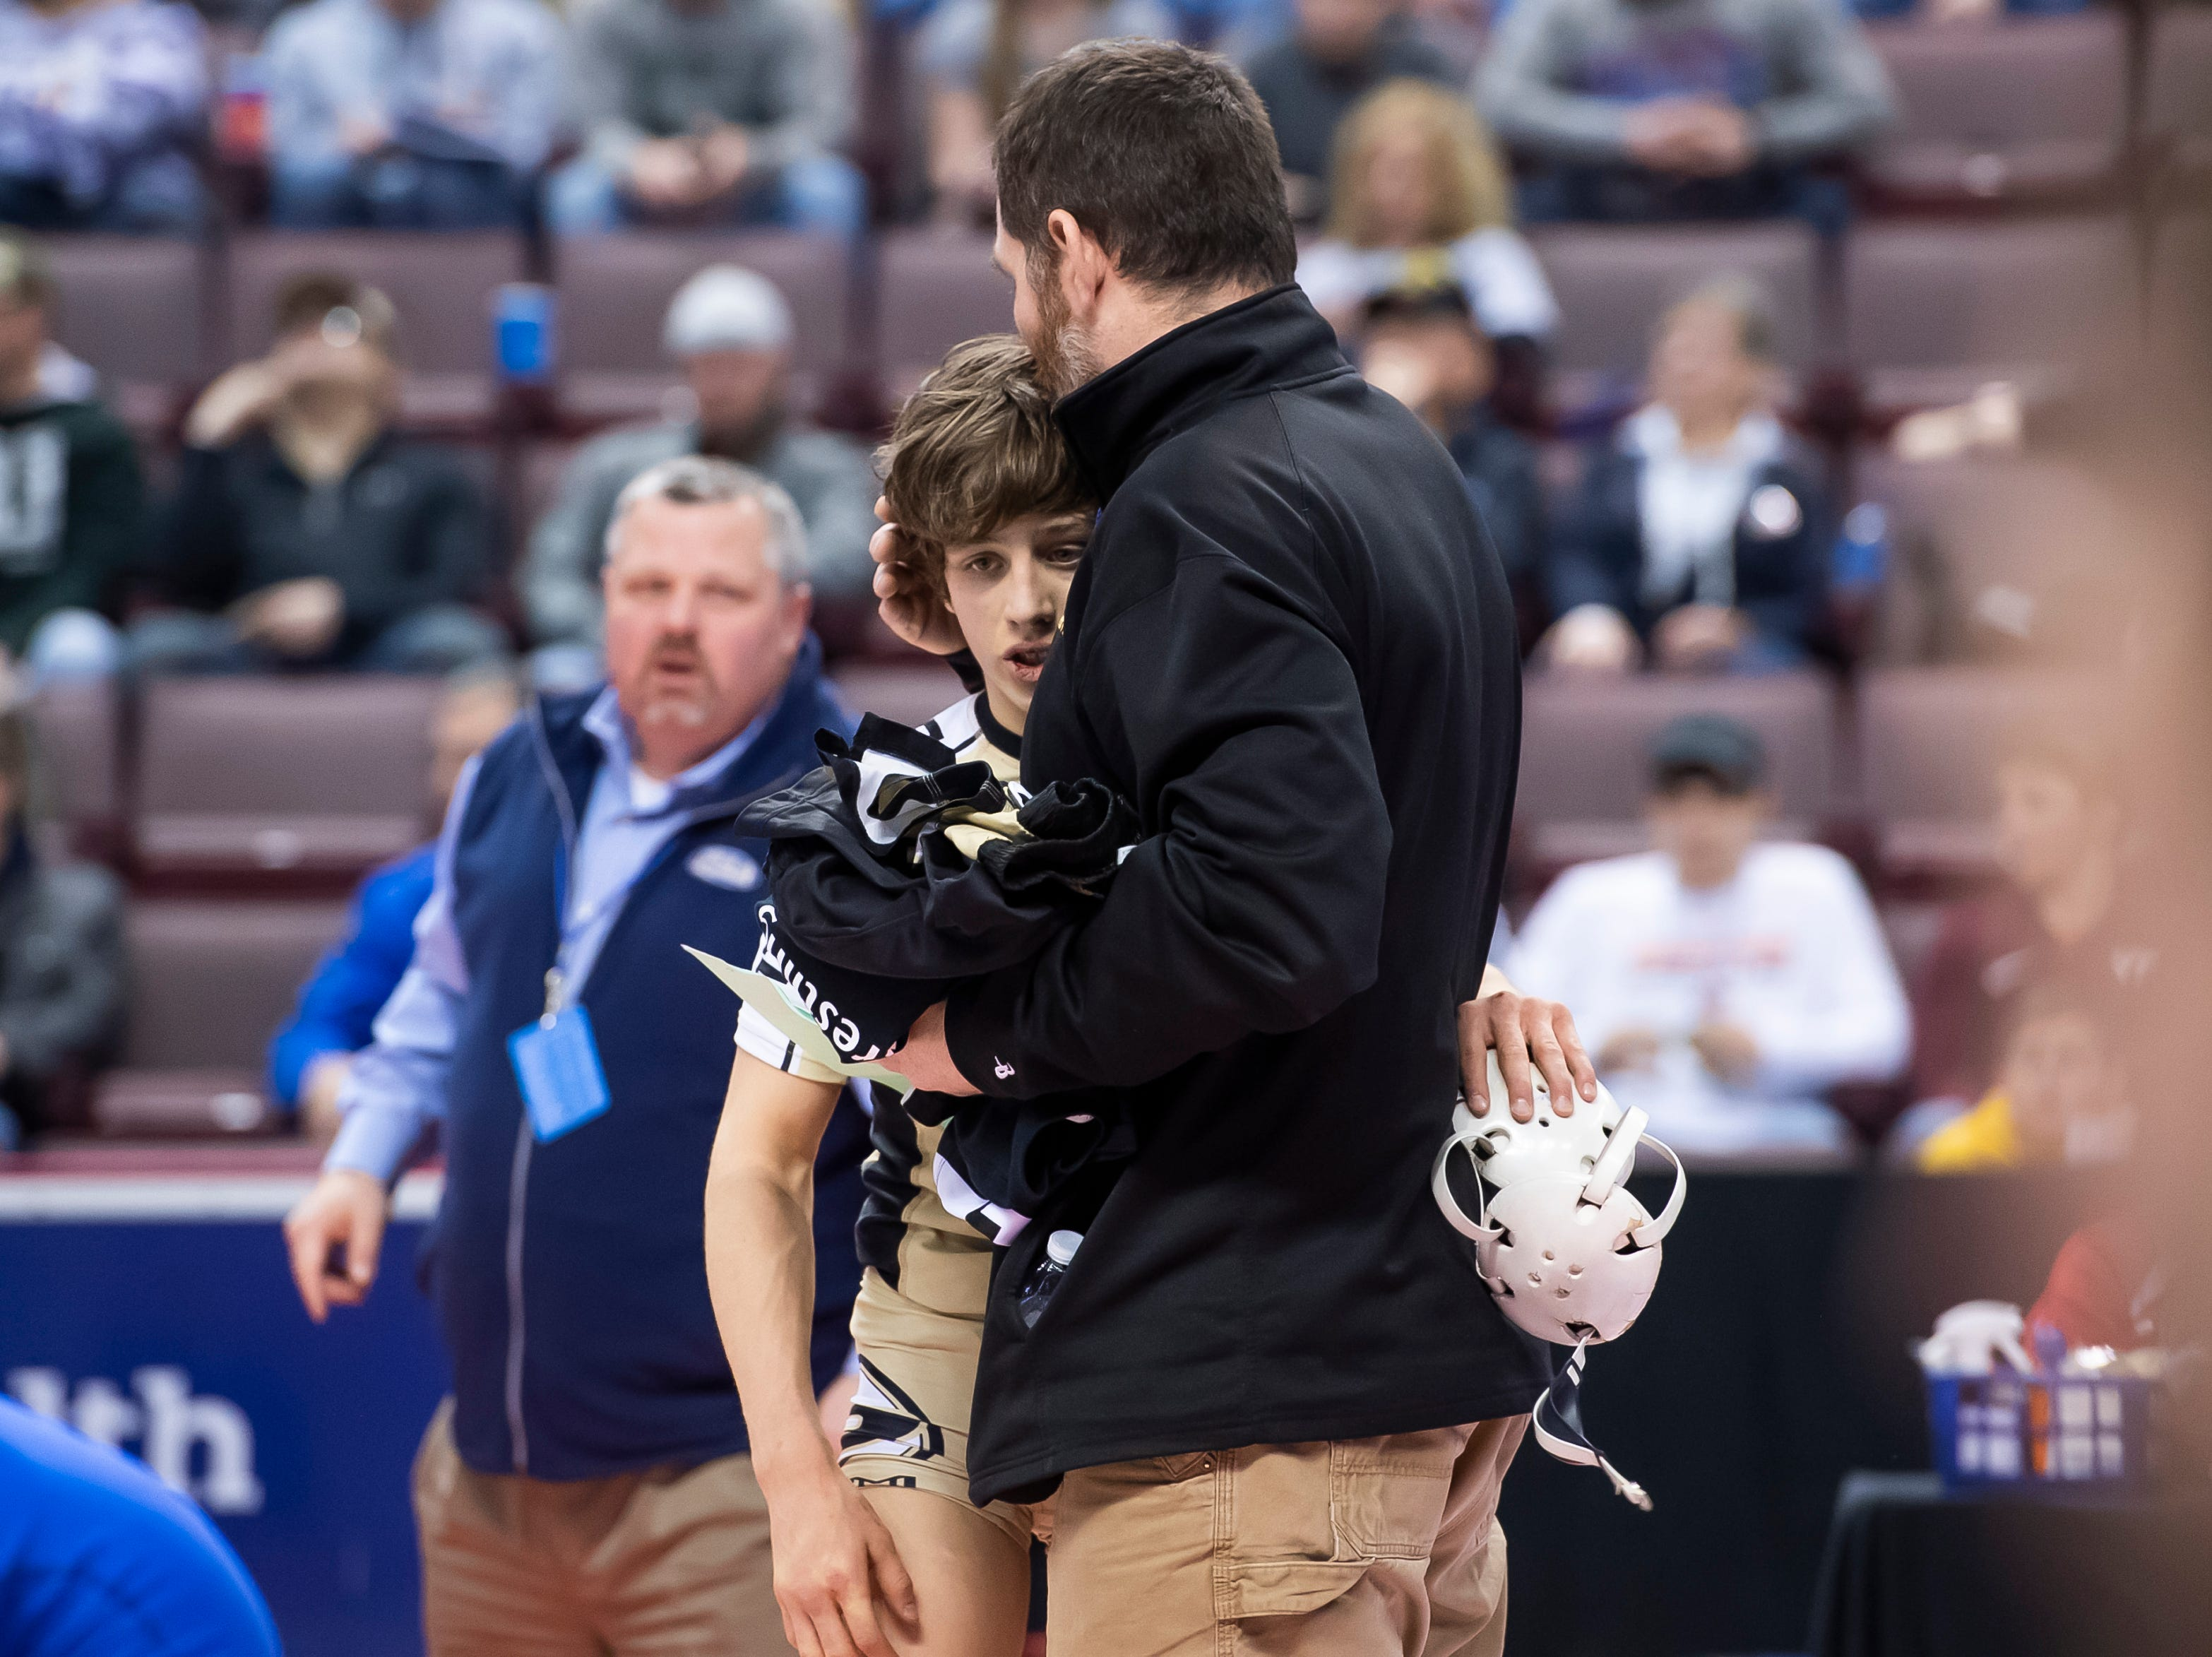 Biglerville's Levi Haines gets a hug from his dad and coach Ken Haines after defeating Chestnut Ridge's Kai Burkett during the 2A 106-pound semifinal bout at the Giant Center in Hershey Friday, March 8, 2019. Haines won by major decision 8-0.